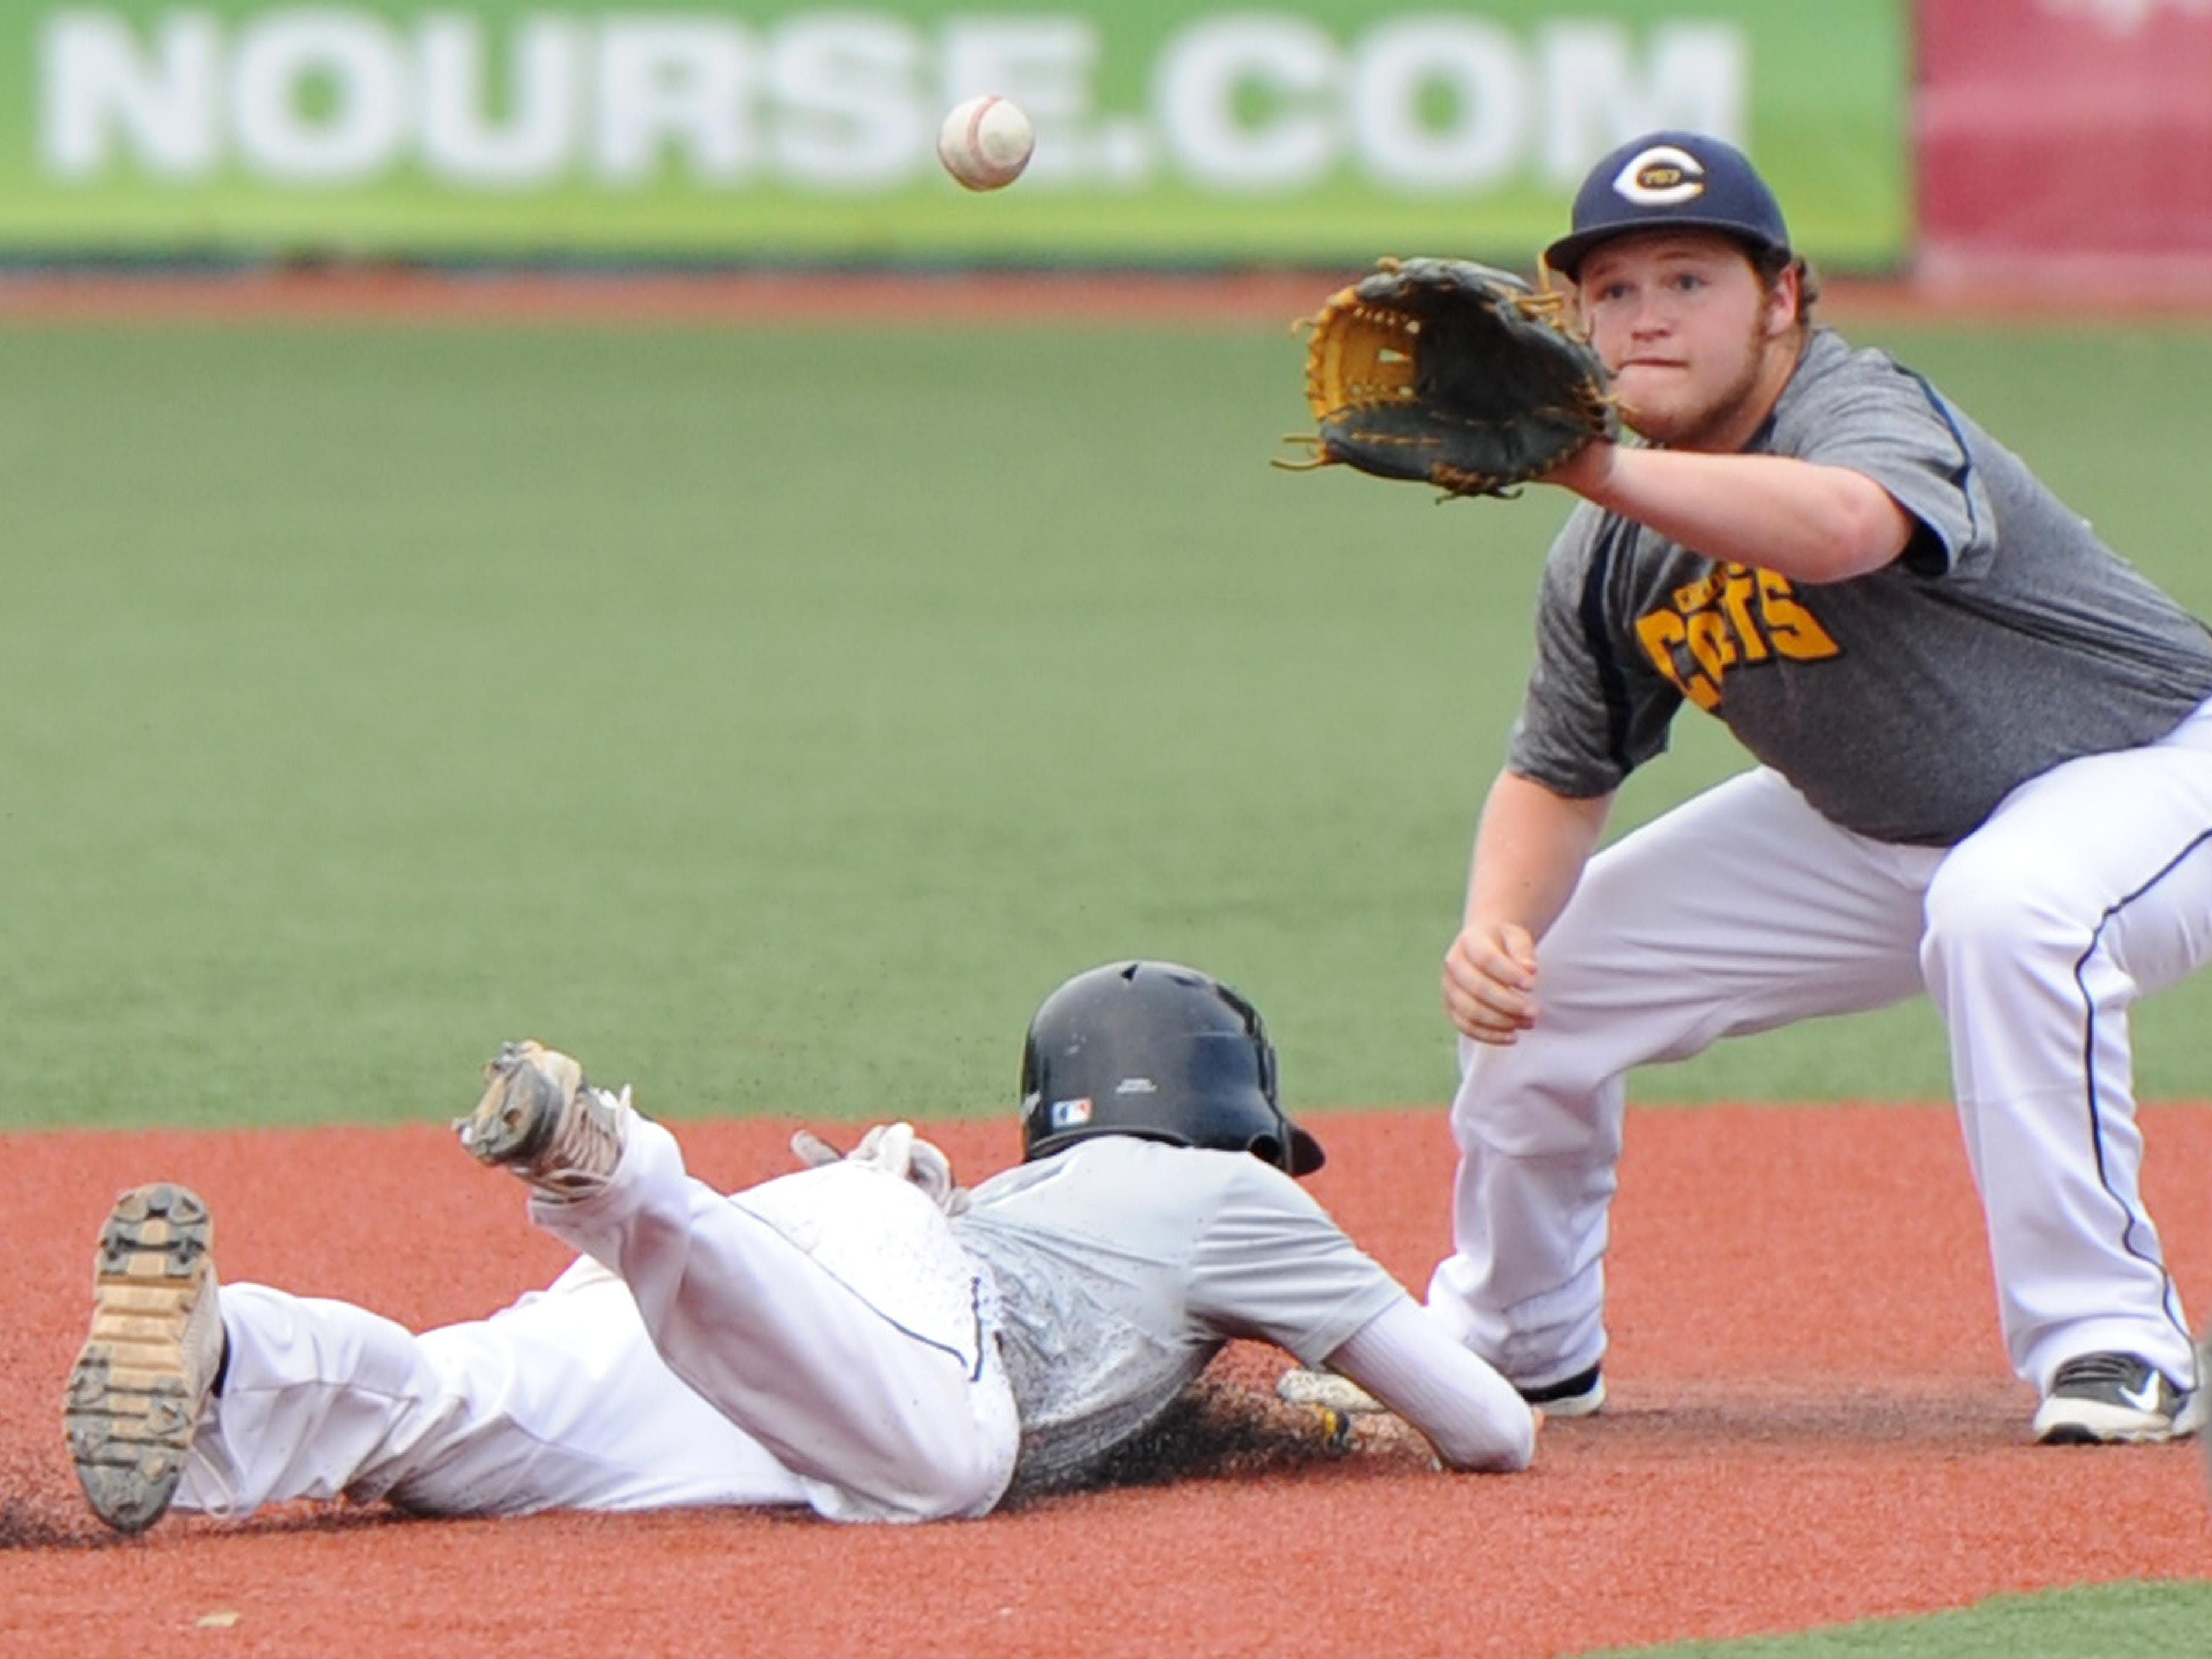 Chillicothe Post 757 played against the Chillicothe Capitals at V.A. Memorial Stadium on Friday.